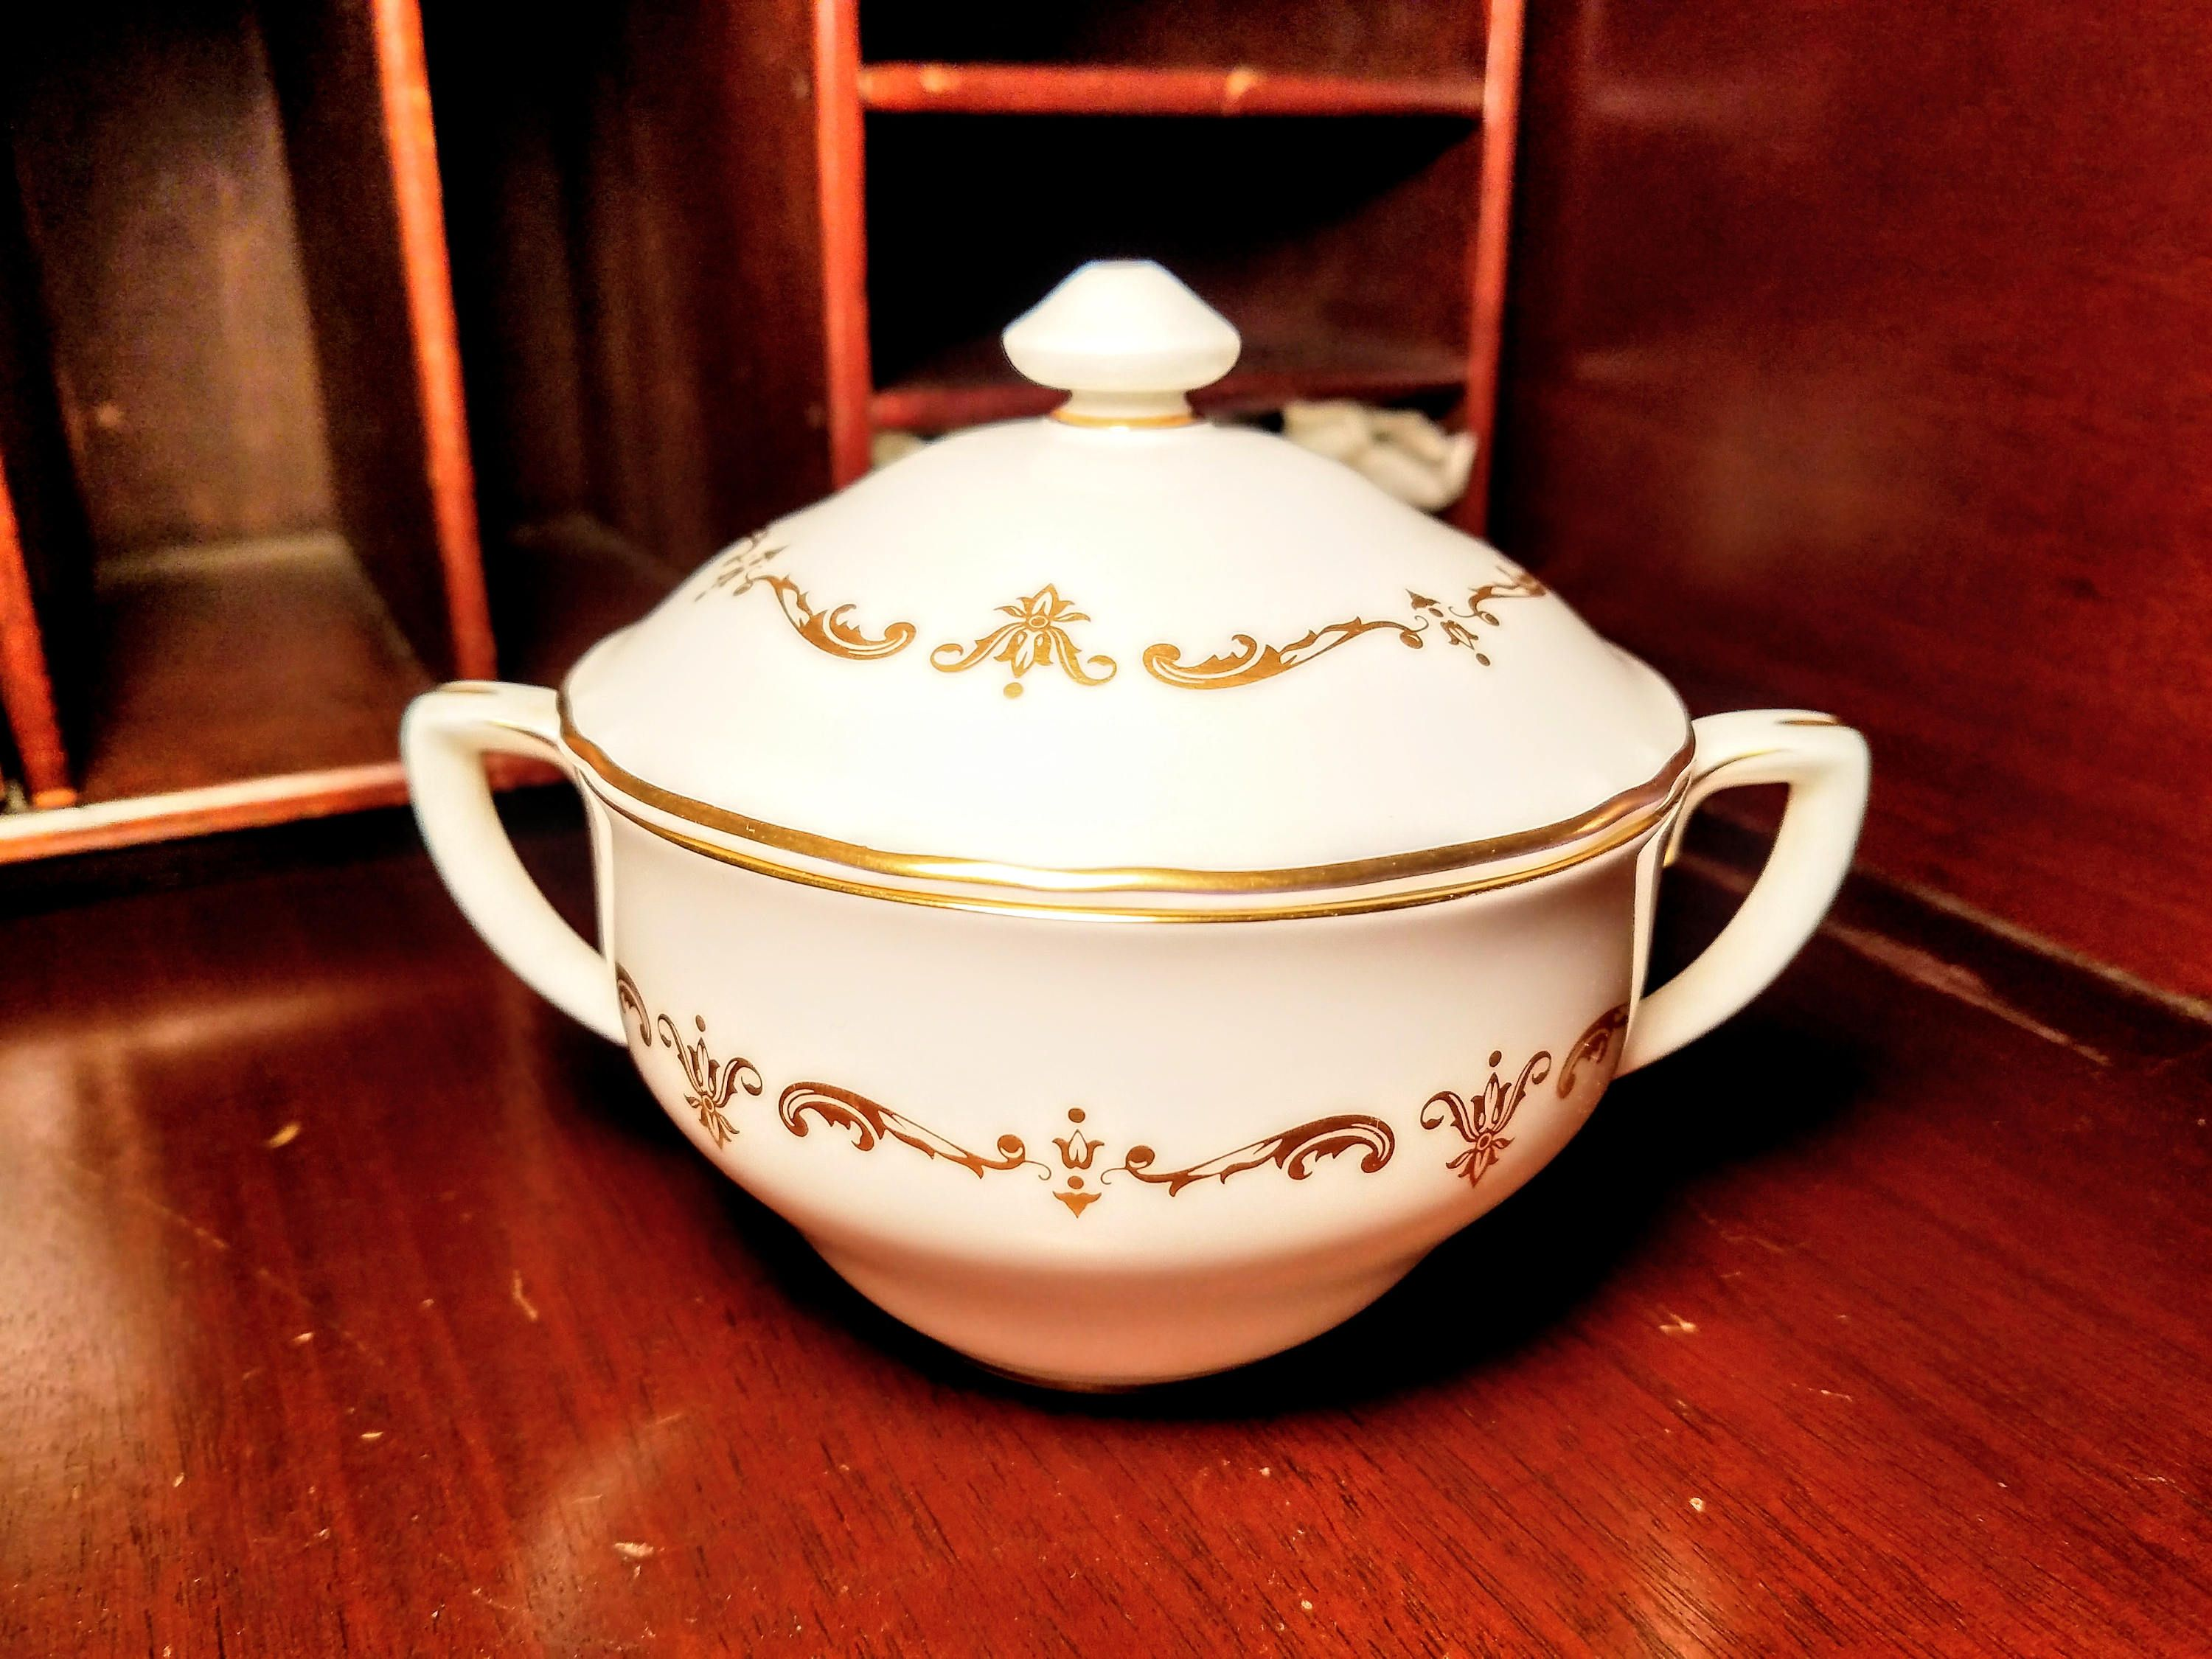 Royal Worcester Gold Chantilly Covered Sugar Bowl, Sugar Bowl with ...